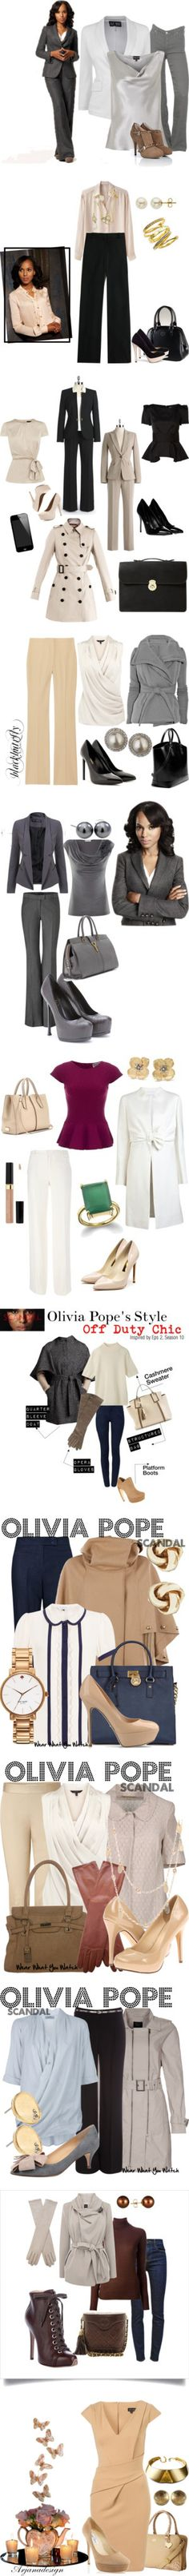 """olivia pope"" by eligdr ❤ liked on Polyvore"